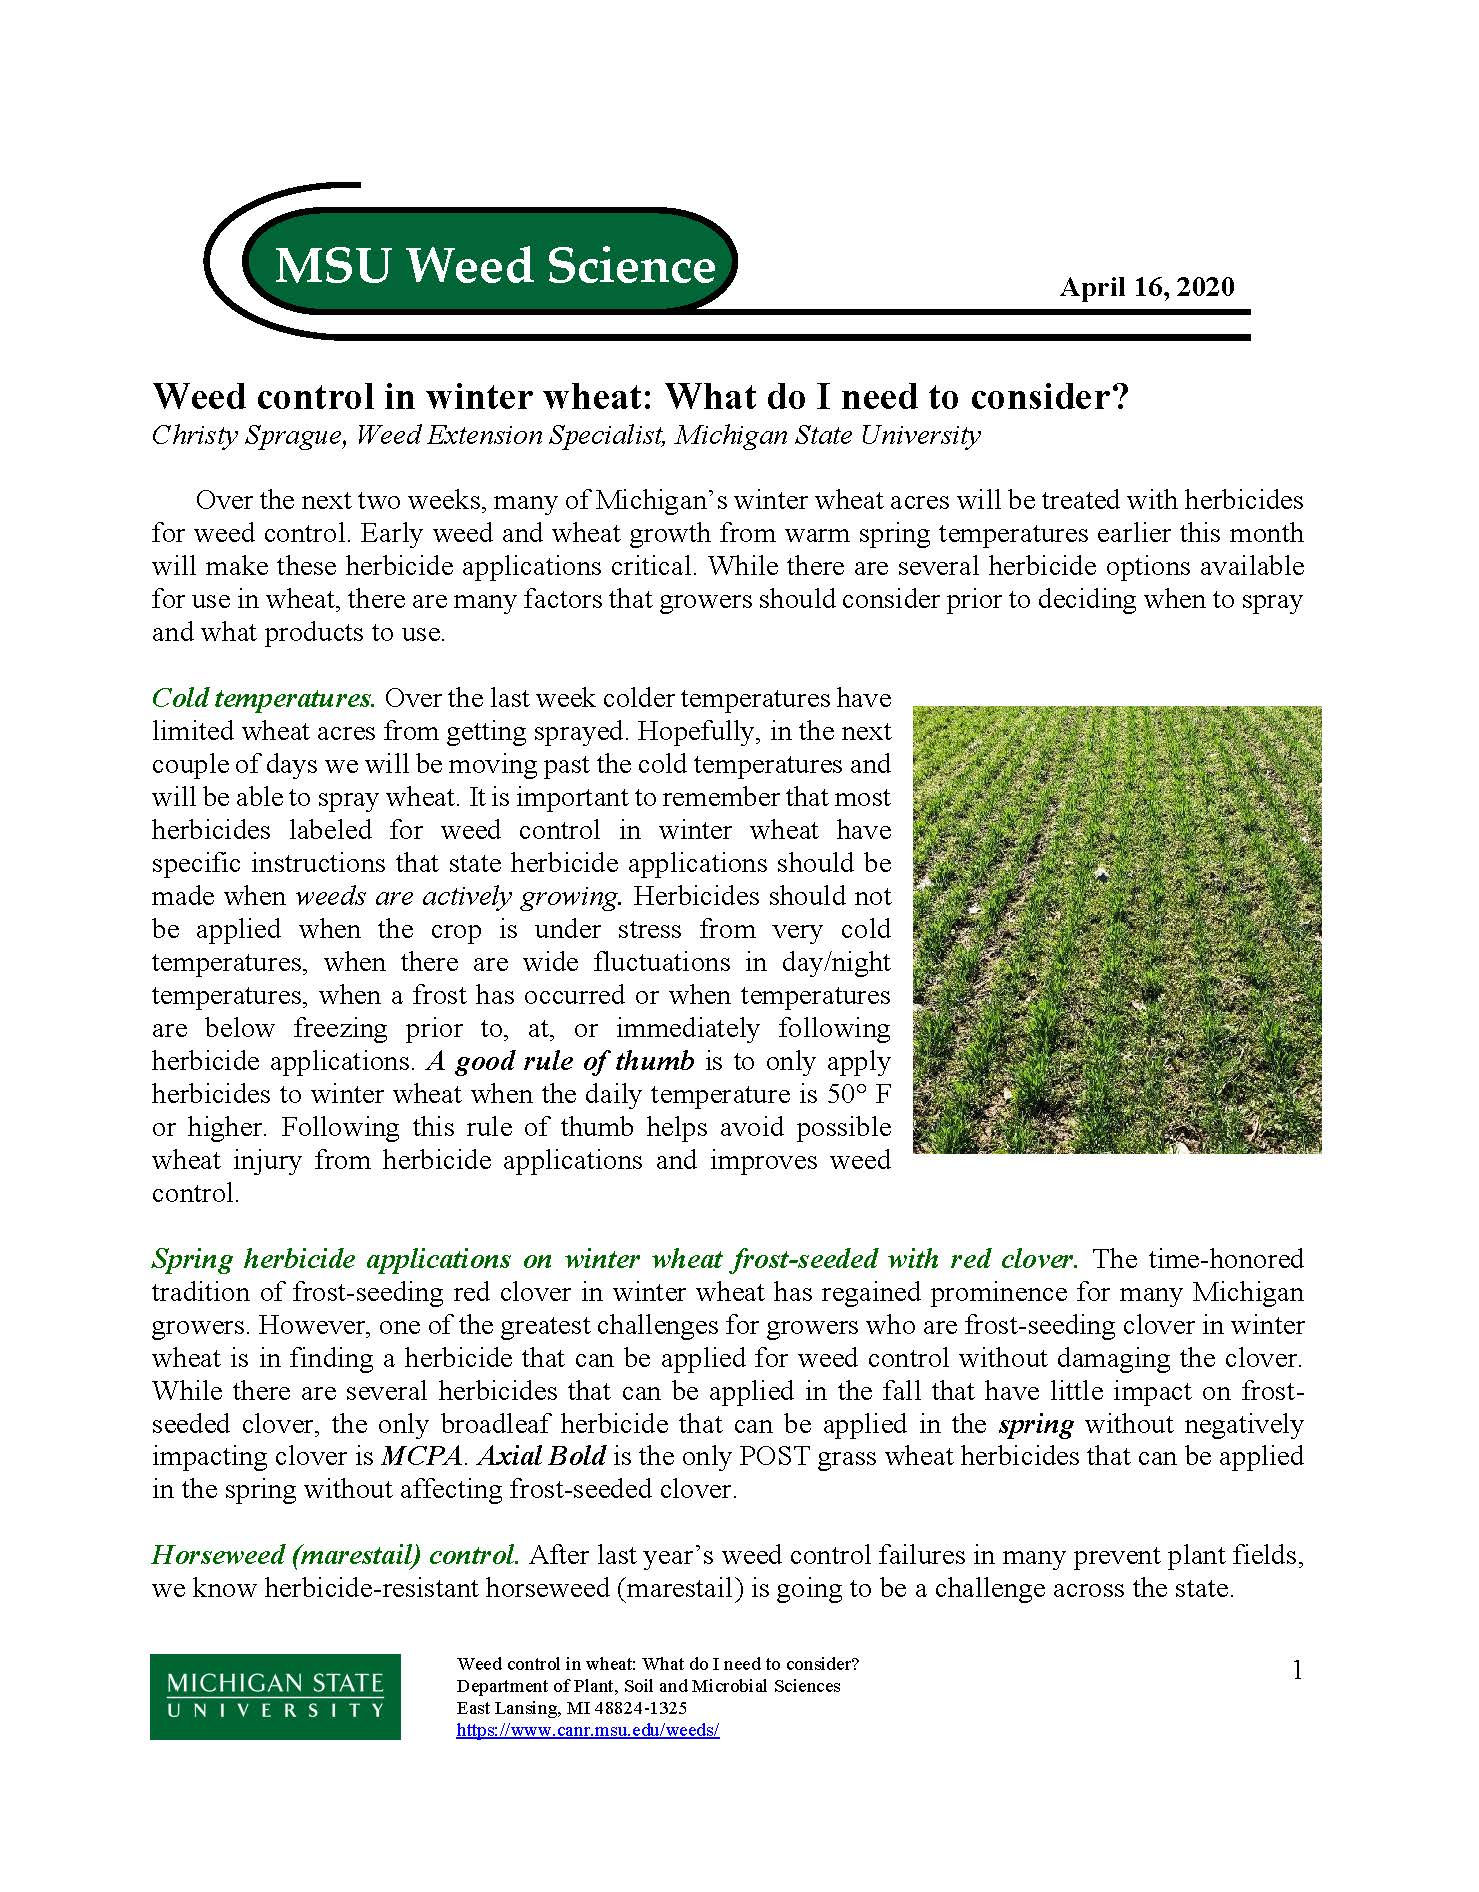 16APR20 Weed Control in Wheat_Page_1